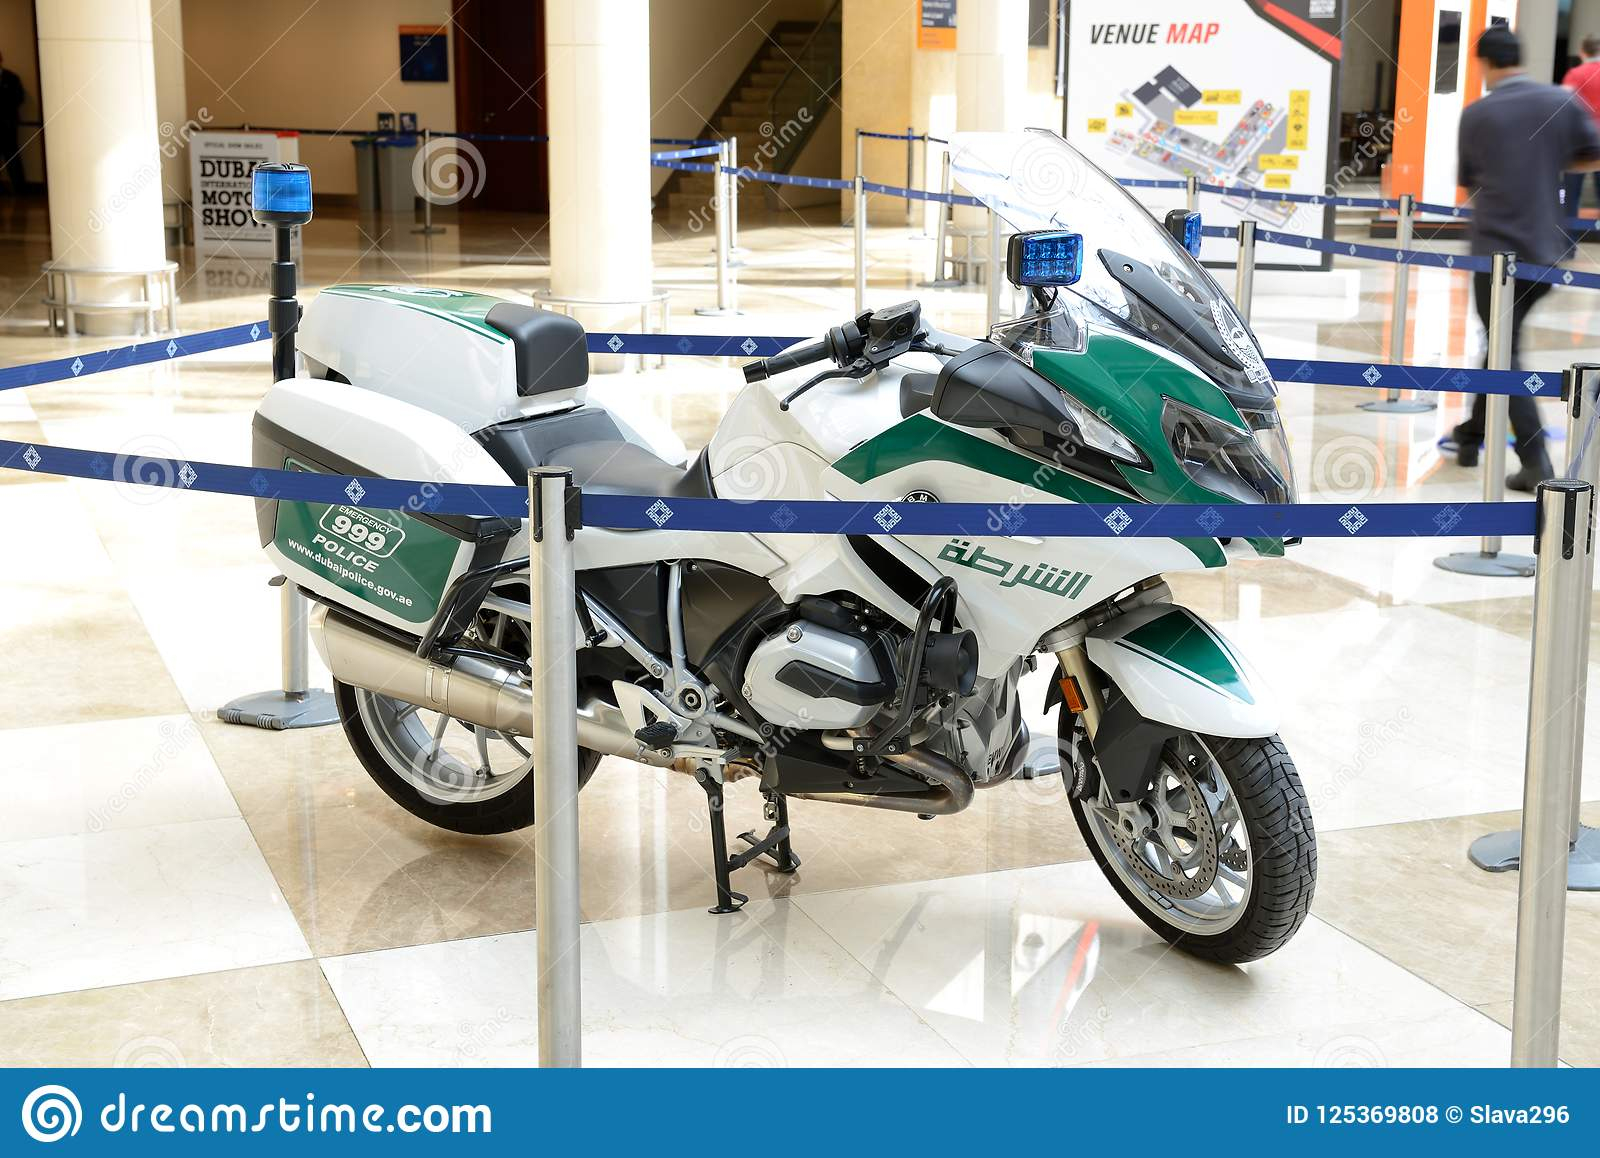 The BMW Bike Of Dubai Police Is On Dubai Motor Show 2017